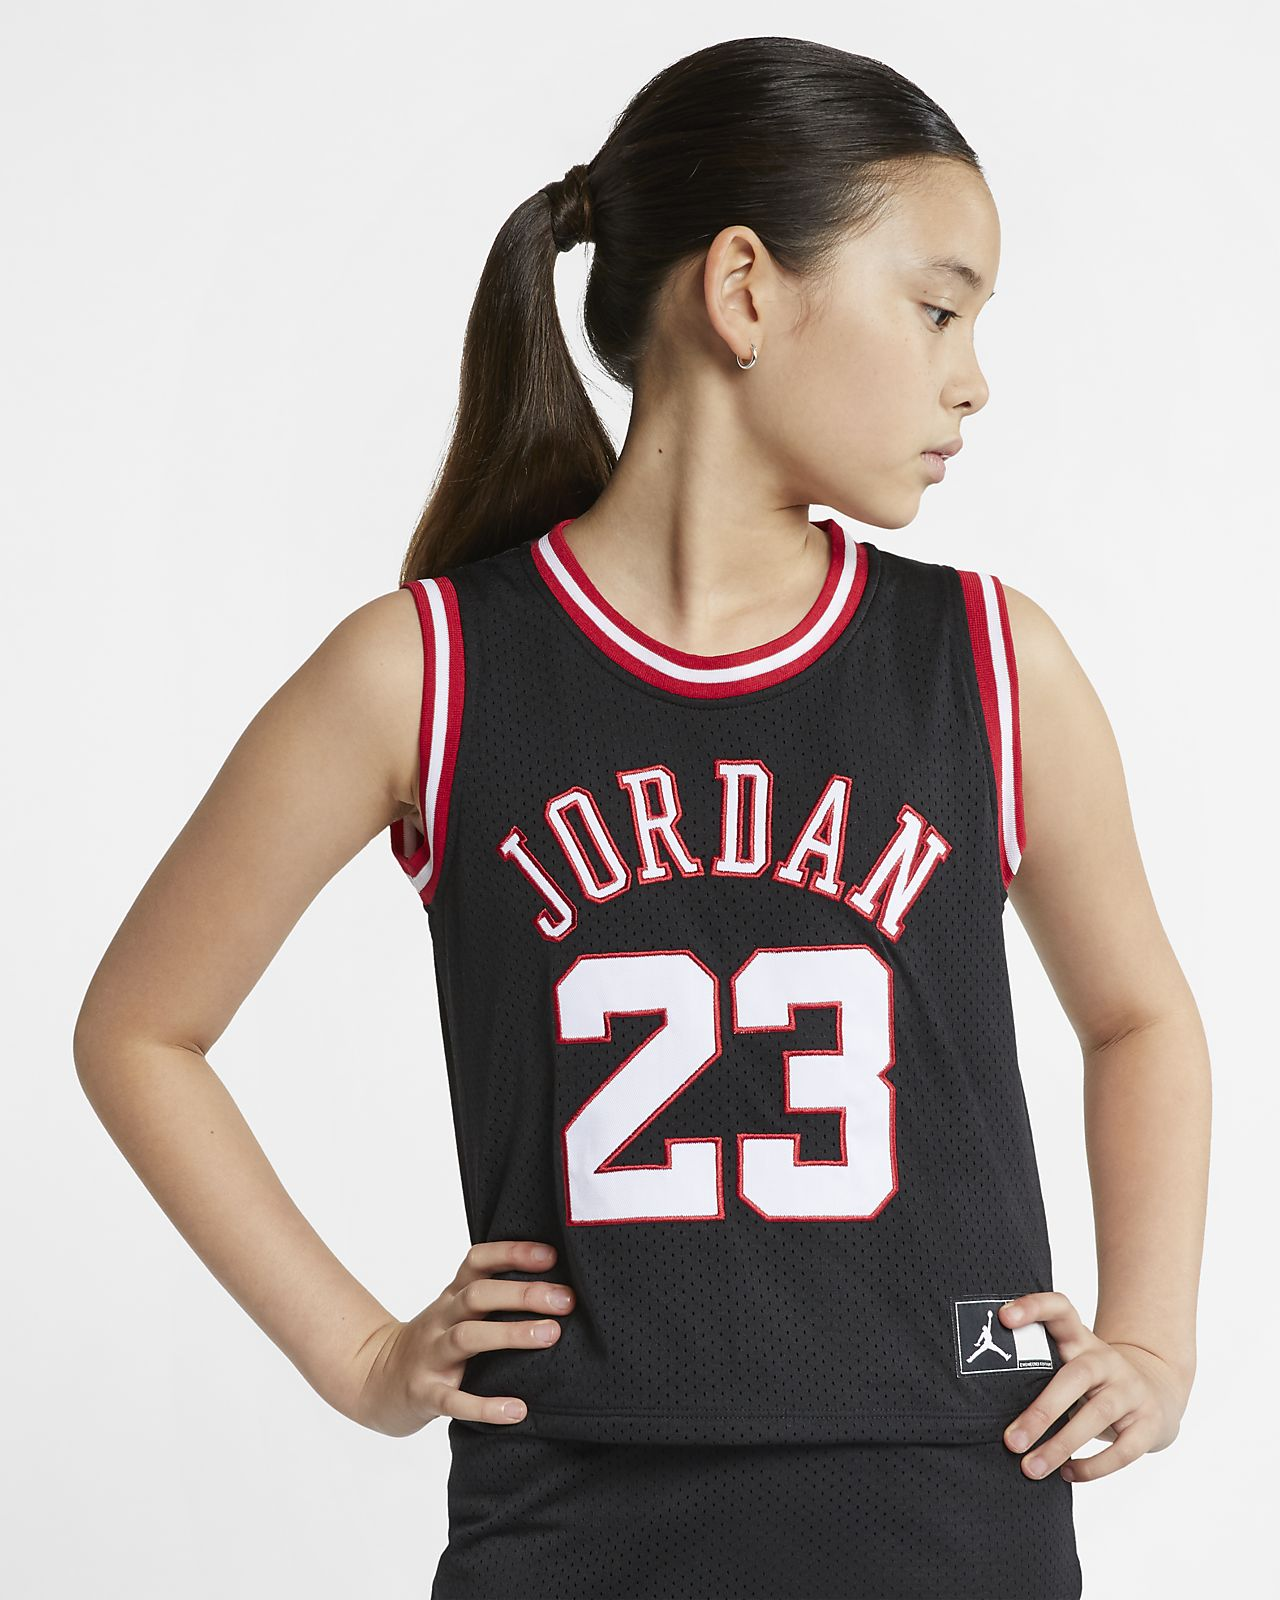 Jordan Older Kids' (Girls') Jersey